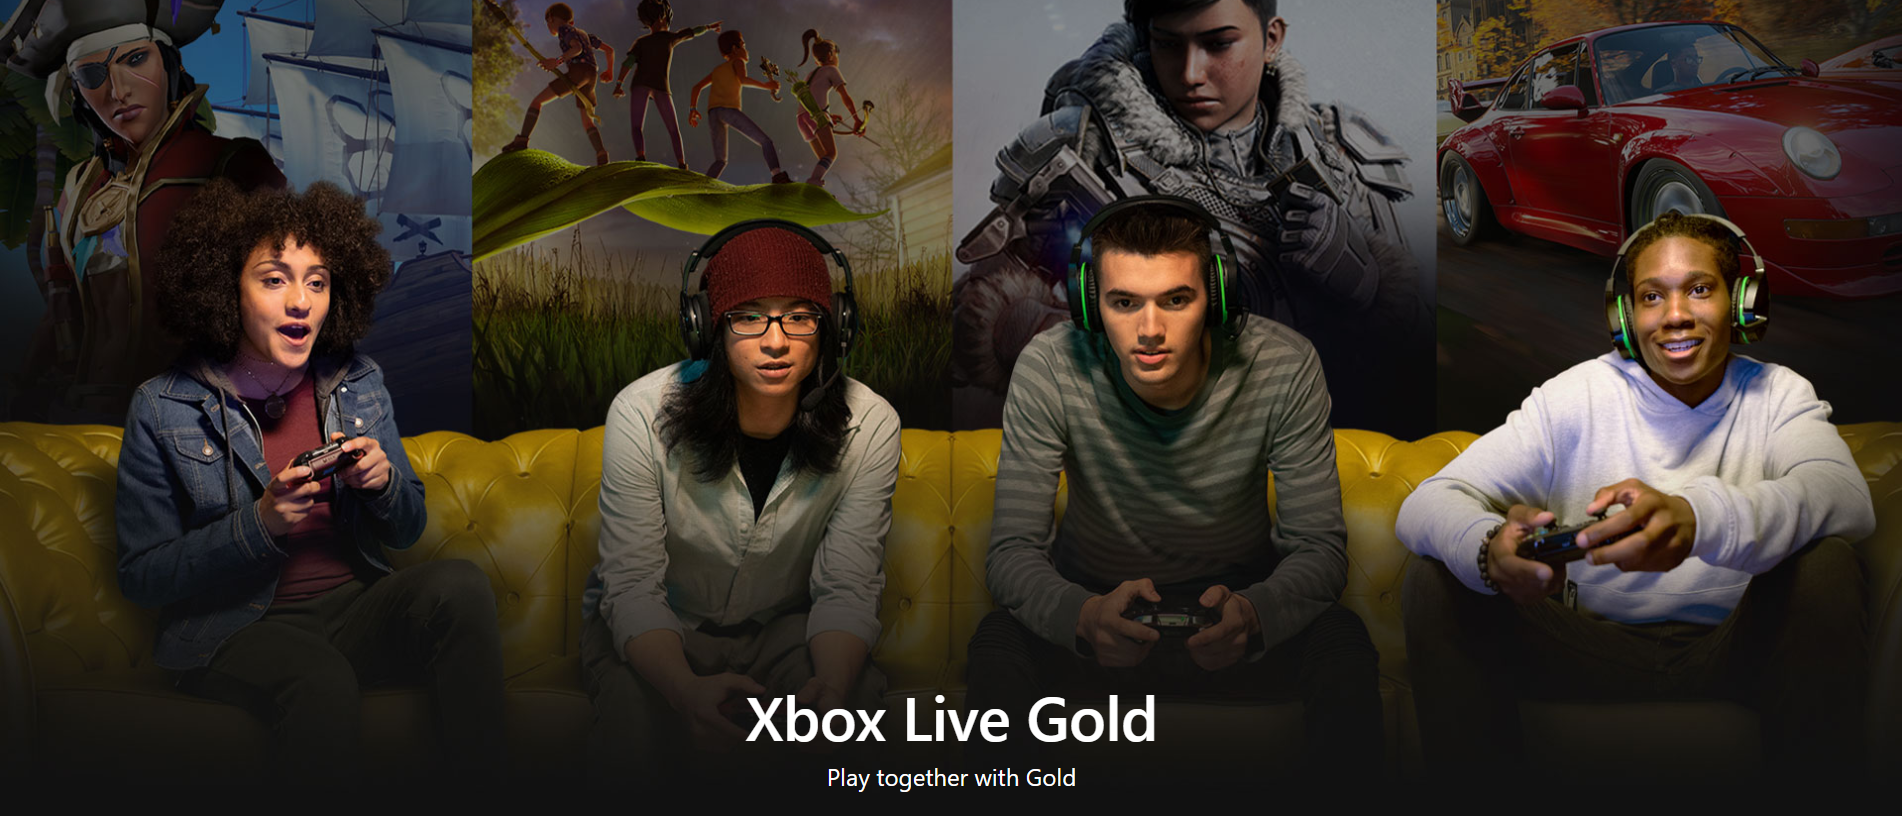 Free To Play goes truly free on Xbox